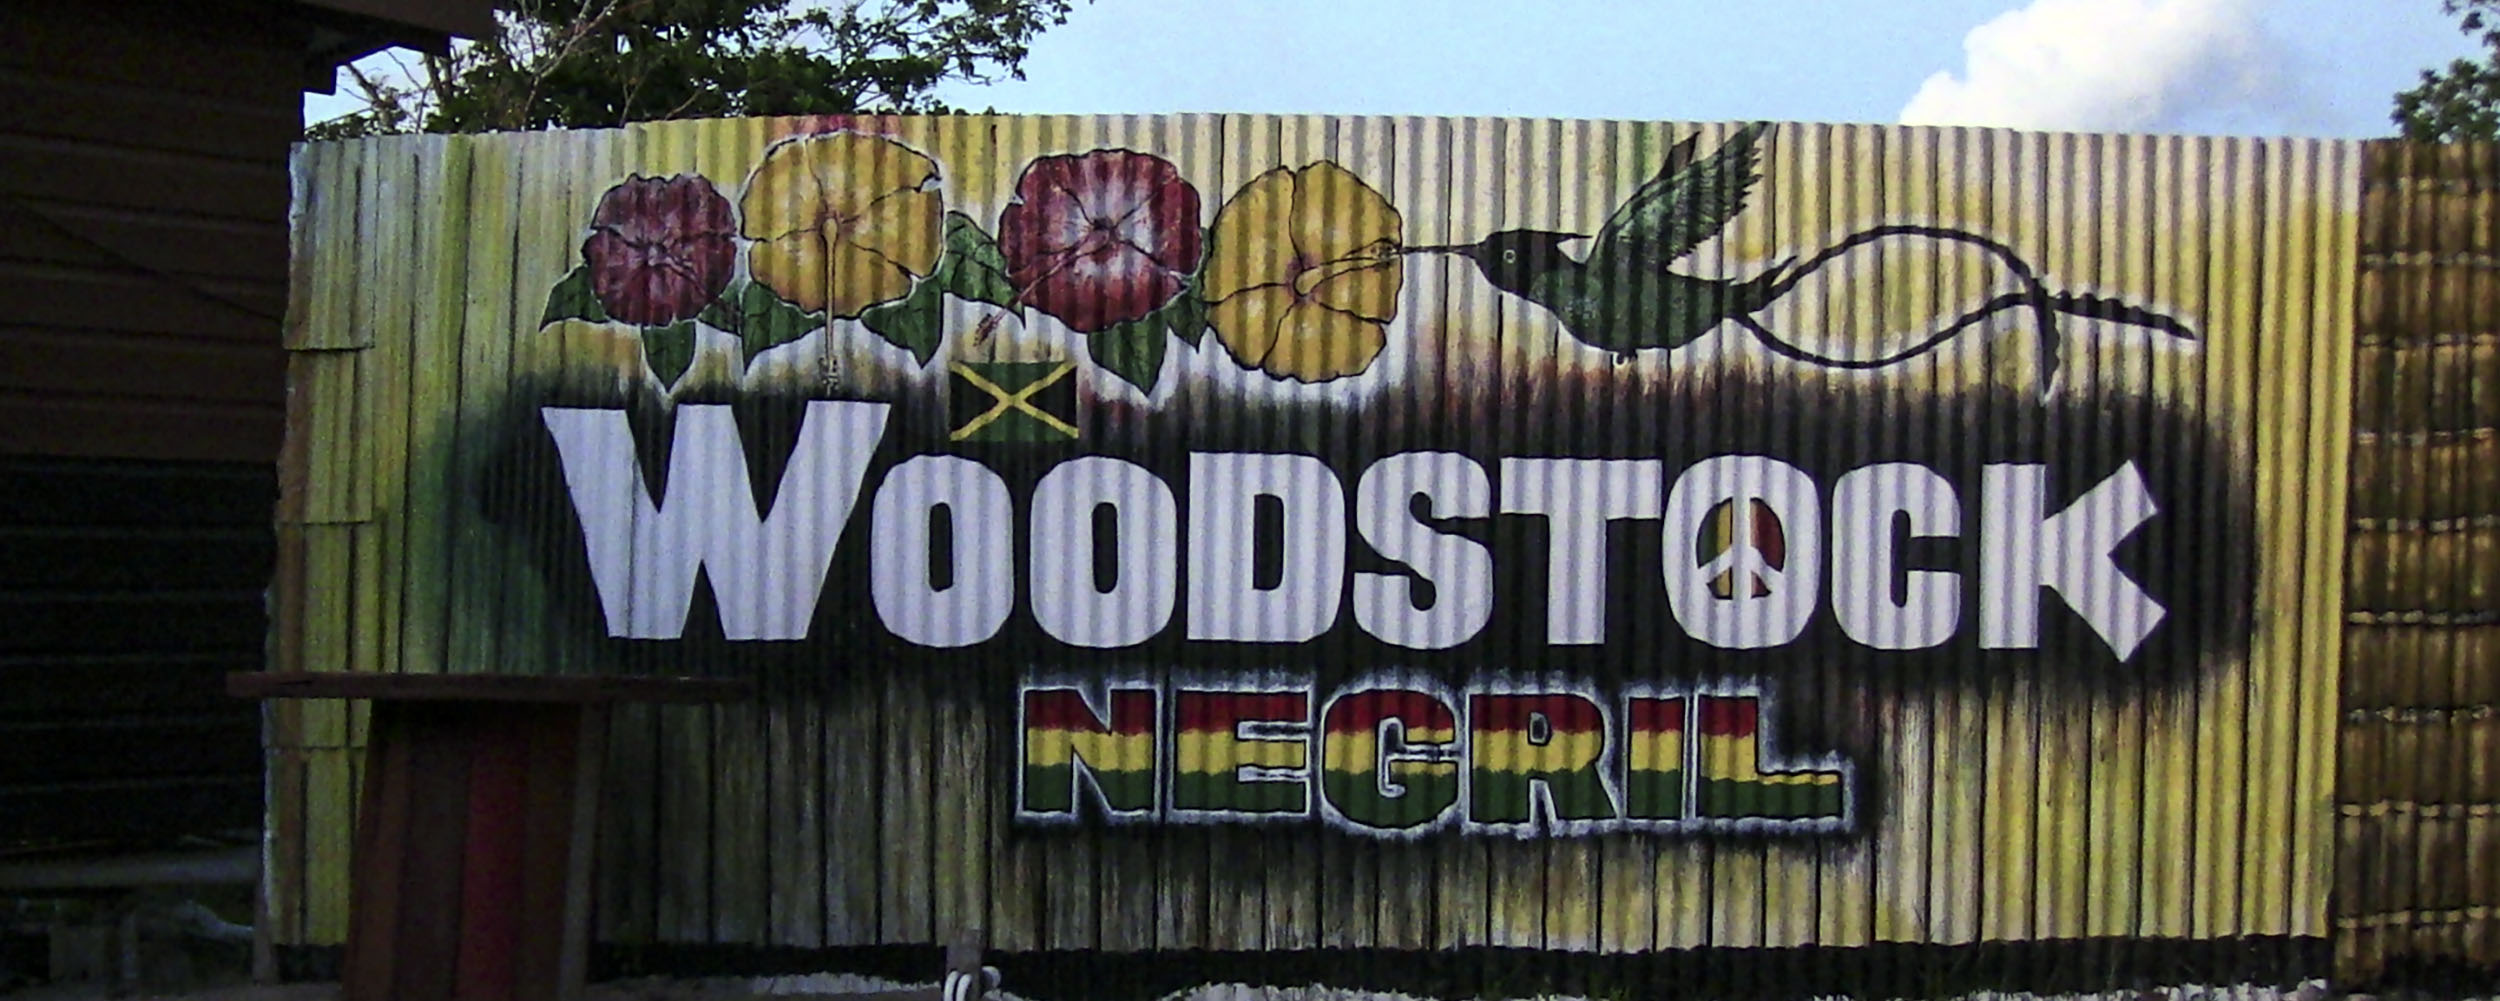 Woodstock Negril, Norman Manley Boulevard - Negril Jamaica